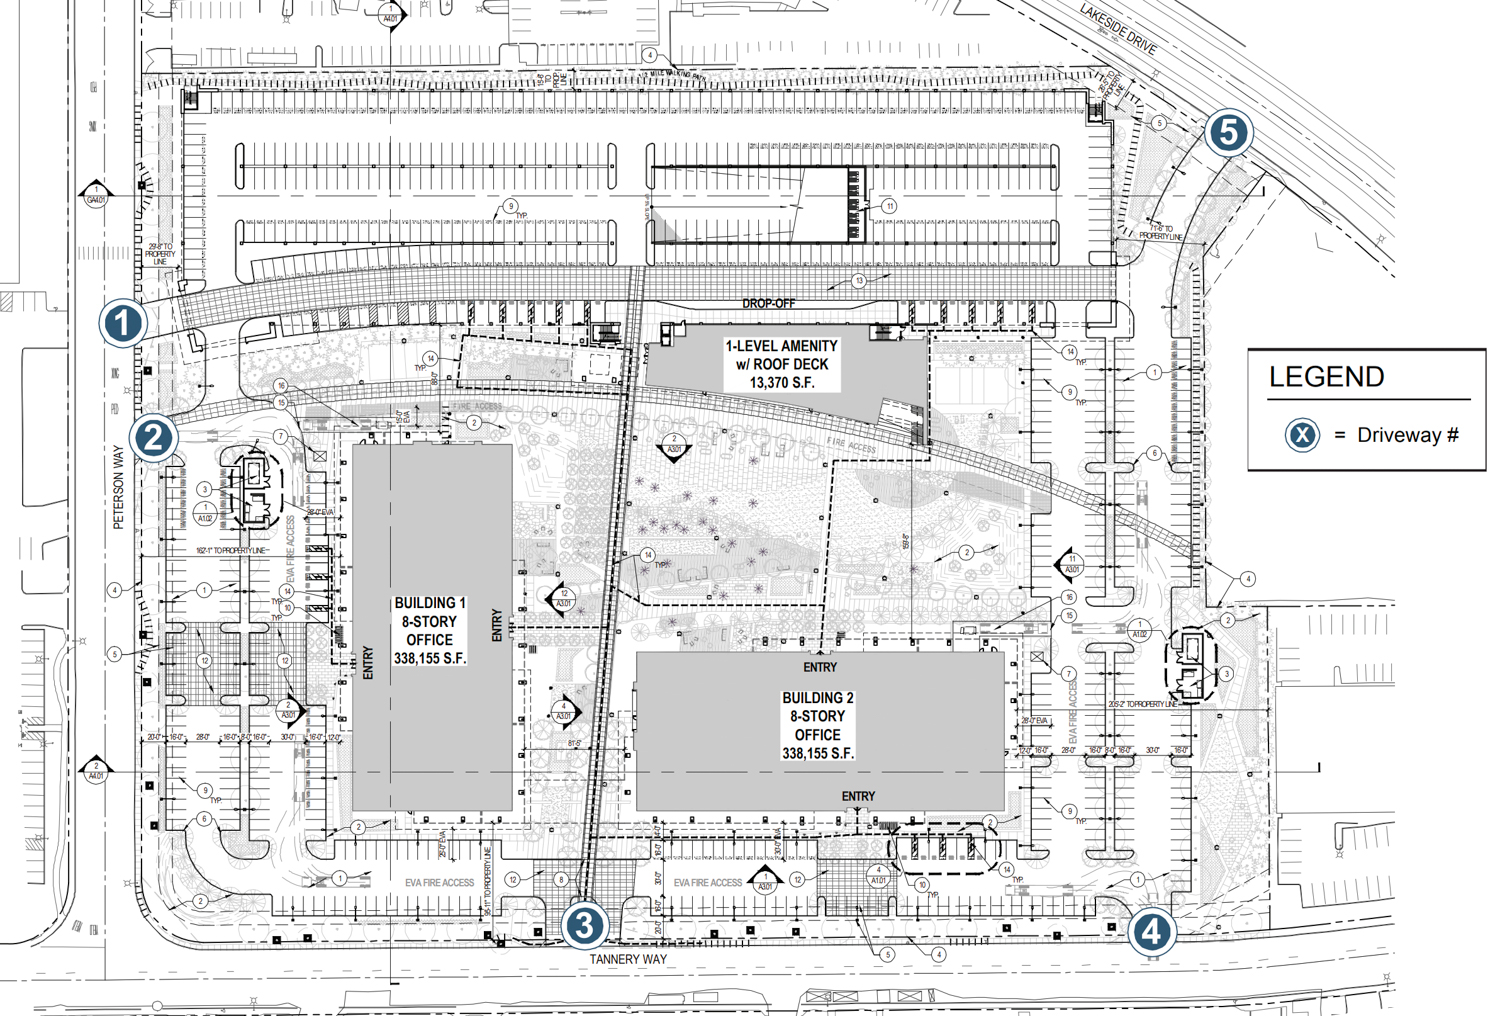 3625 Peterson Way site plan, map by ARC Tech